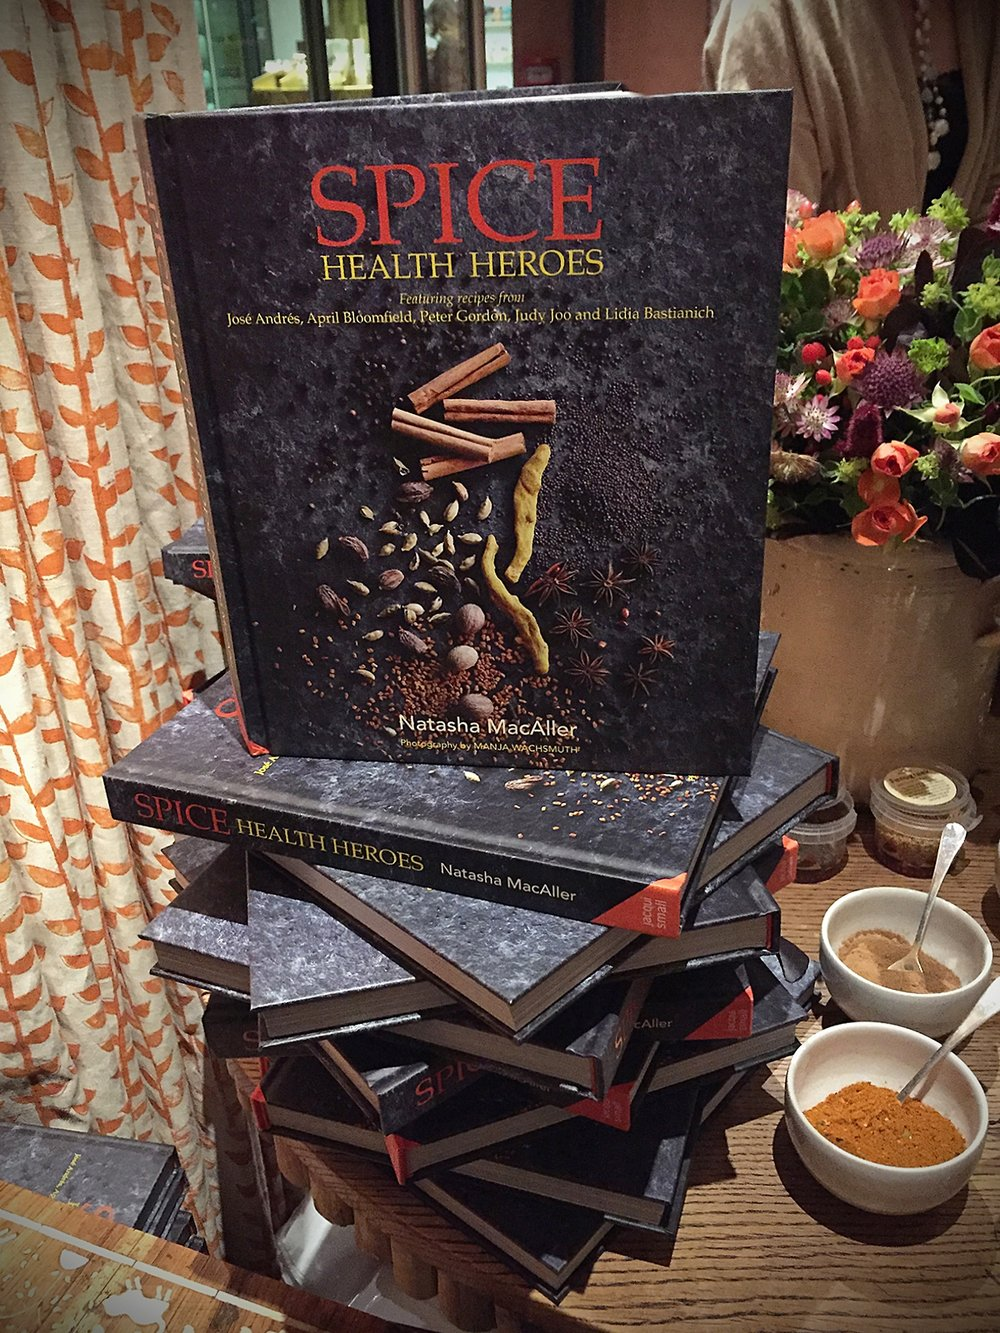 Spice Health Heroes will be available October 20, 2016. Pre-order your copy now!